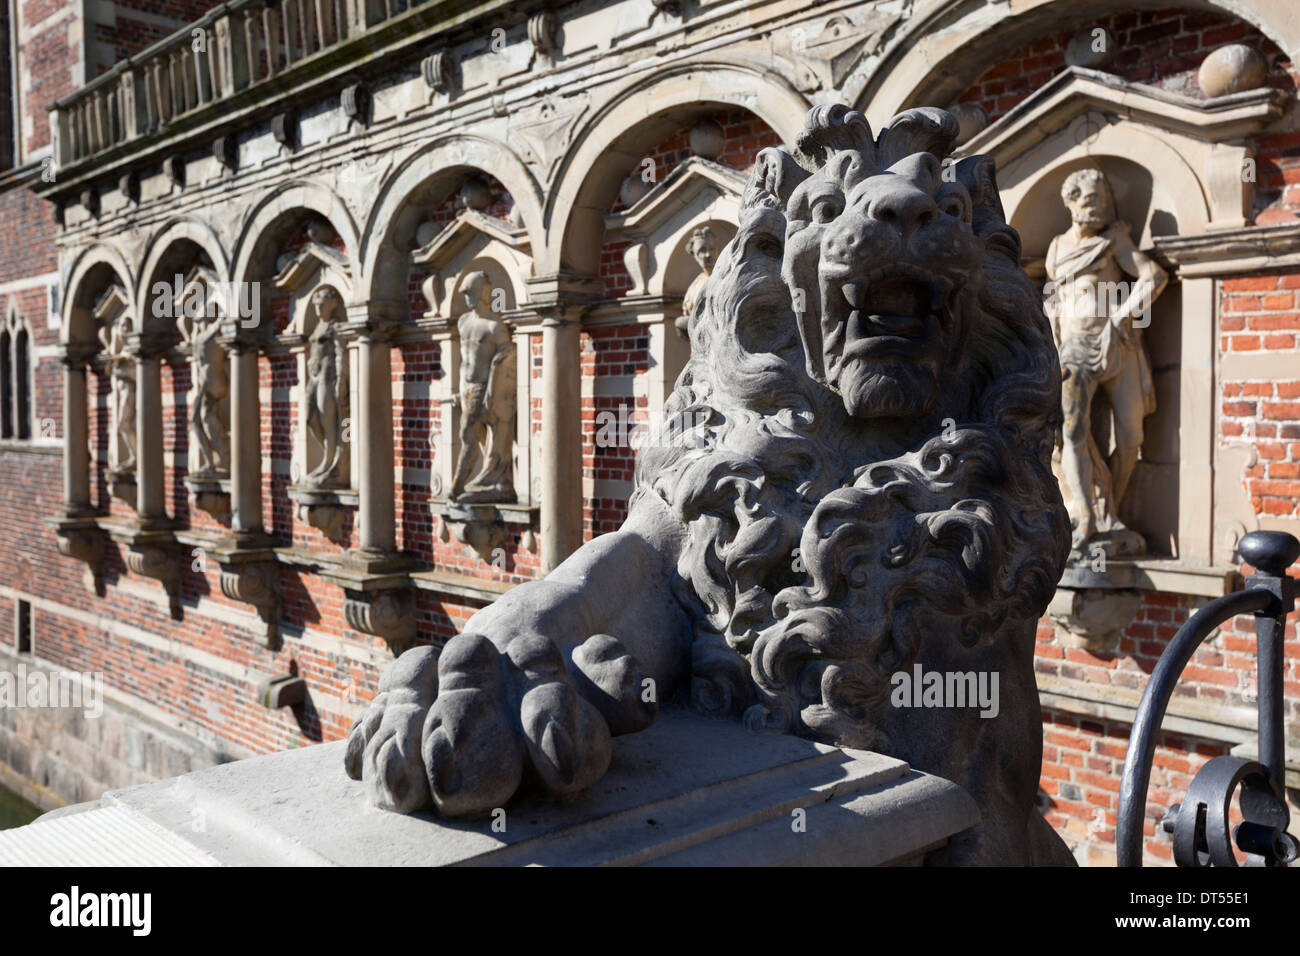 Lion carving at Frederiksborg Palace - Stock Image